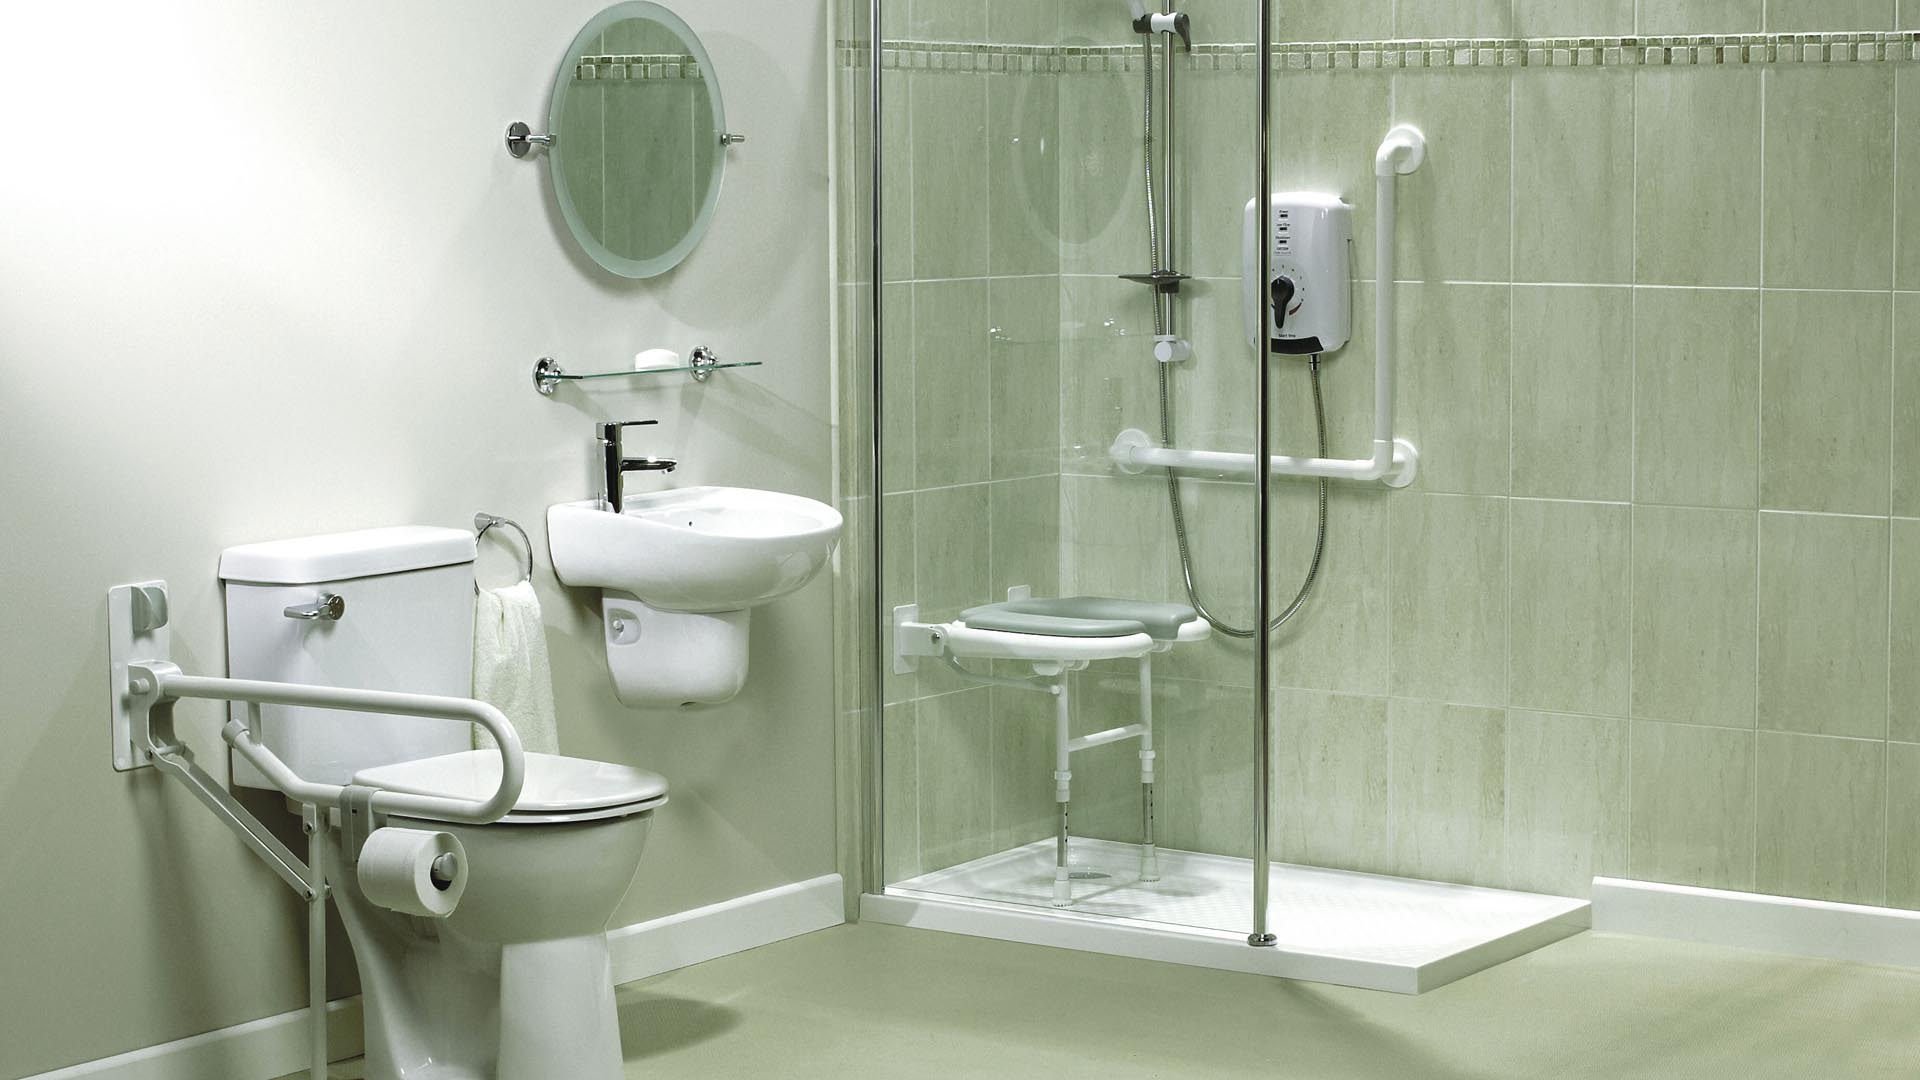 Disabled bathroom products woodhouse sturnham ltd for Items for bathroom